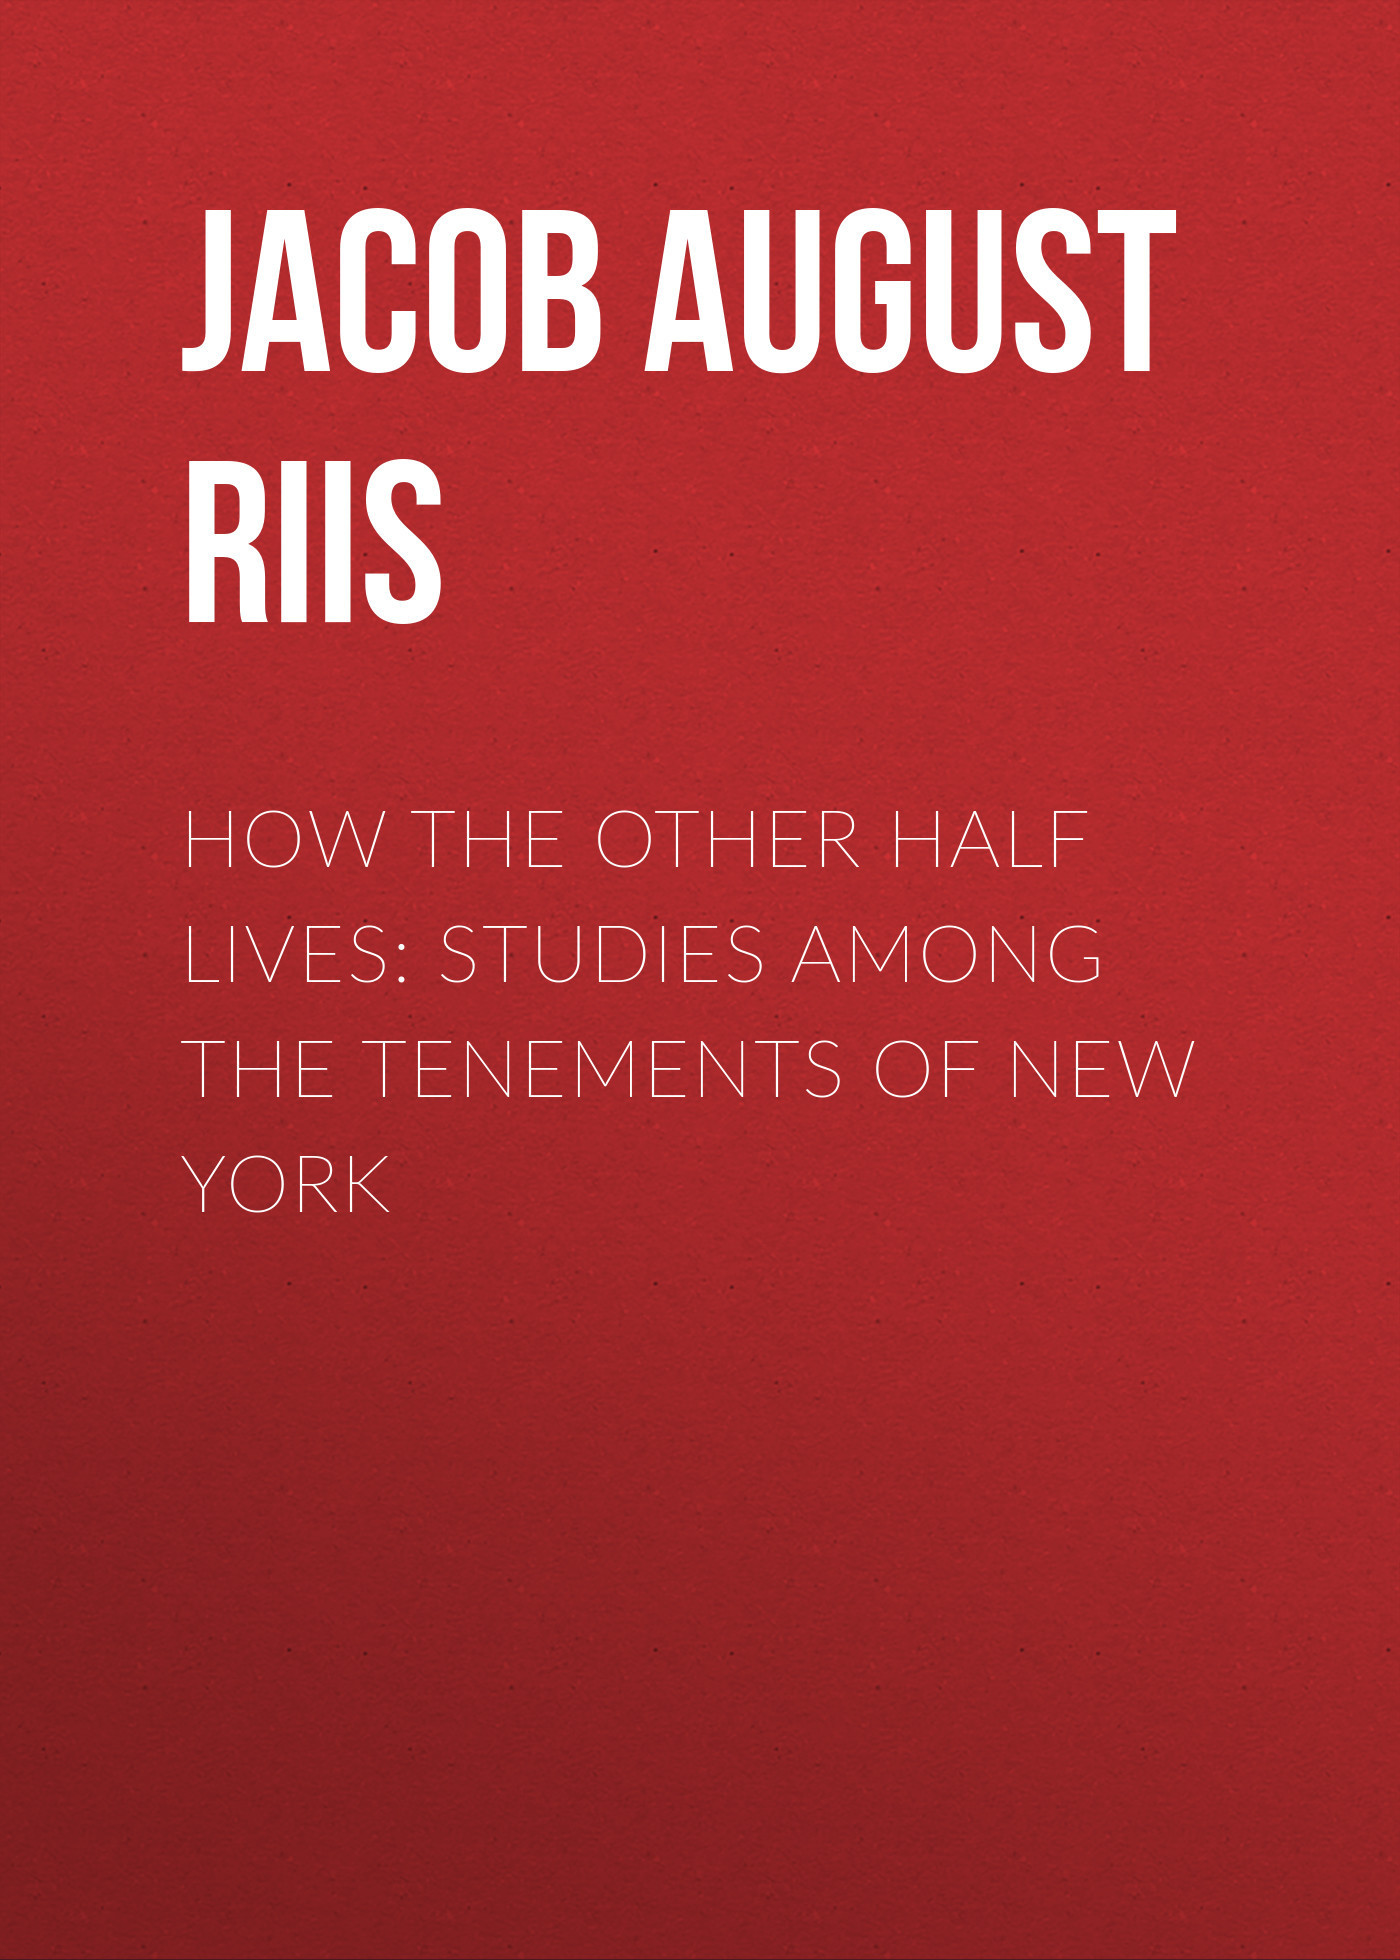 Jacob August Riis How the Other Half Lives: Studies Among the Tenements of New York 116660 44 116710ln black